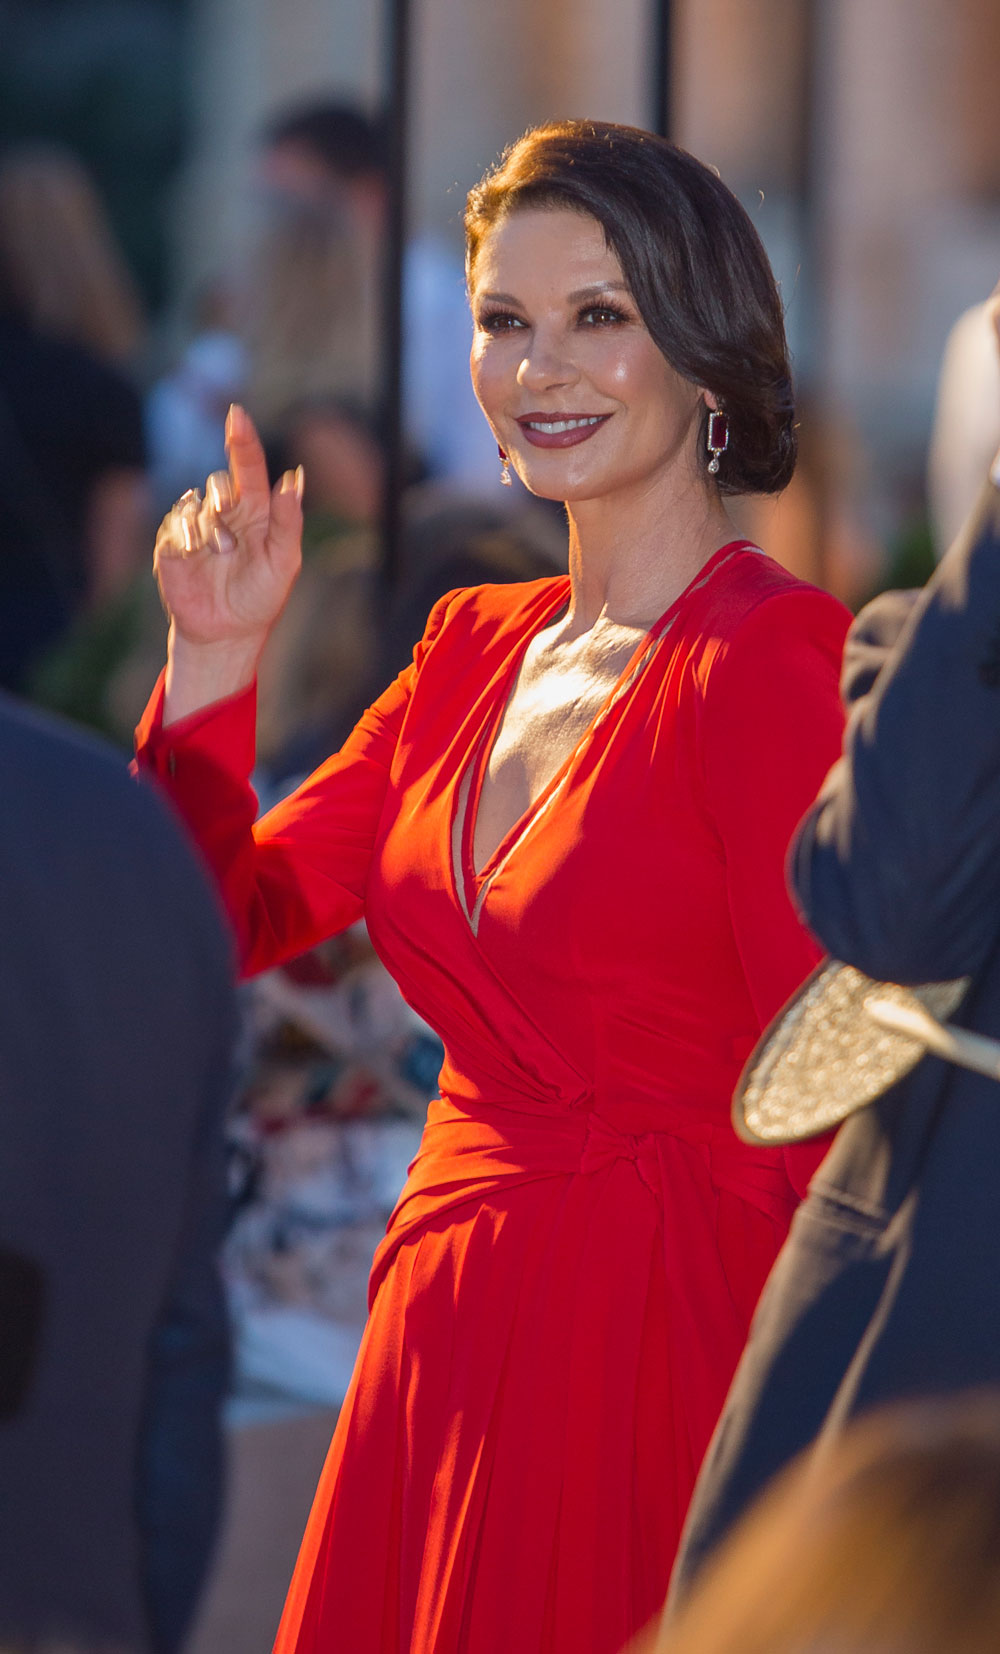 Catherine Zeta-Jones attended the show with her daughter